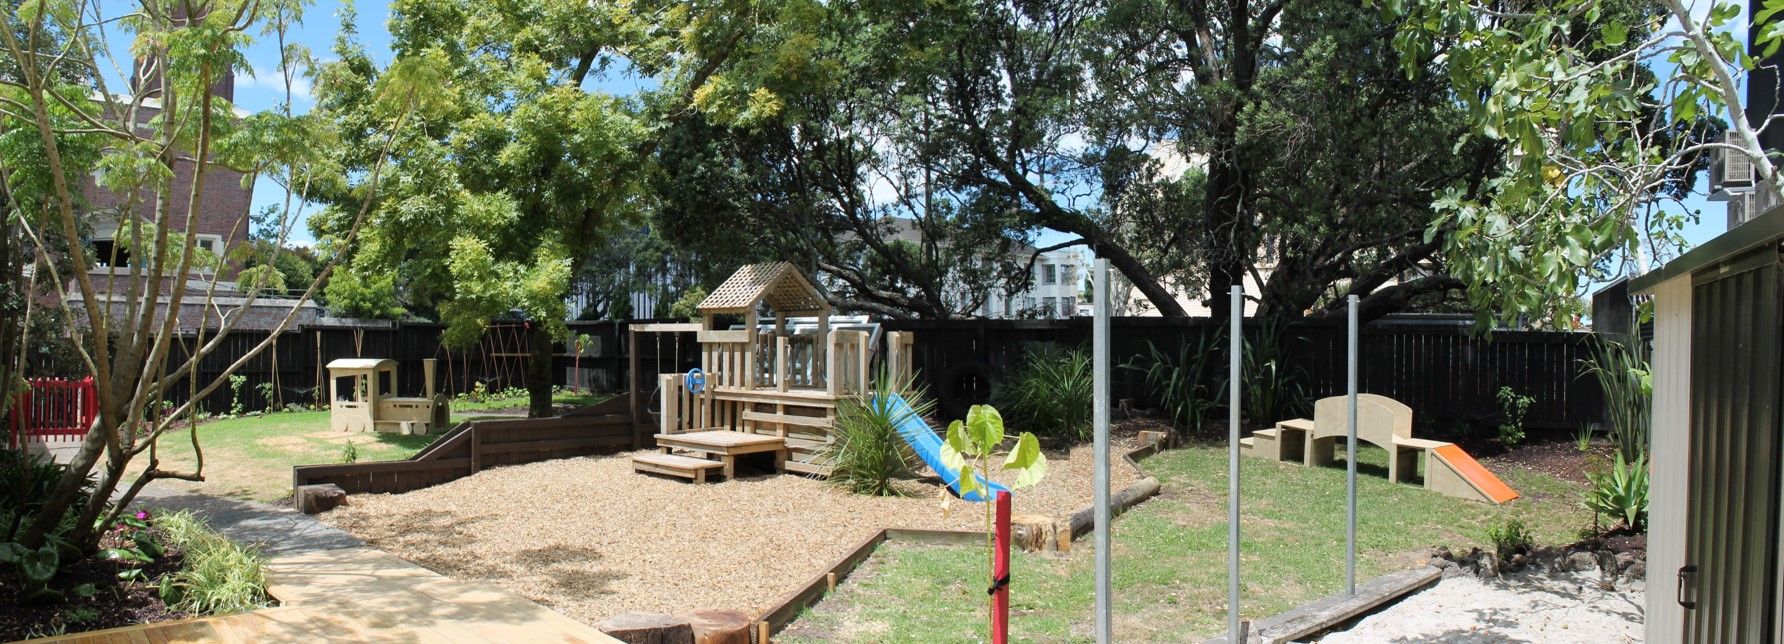 Milky Way Early Learning Centre | Newmarket / Auckland CBD | Chrysalis Group